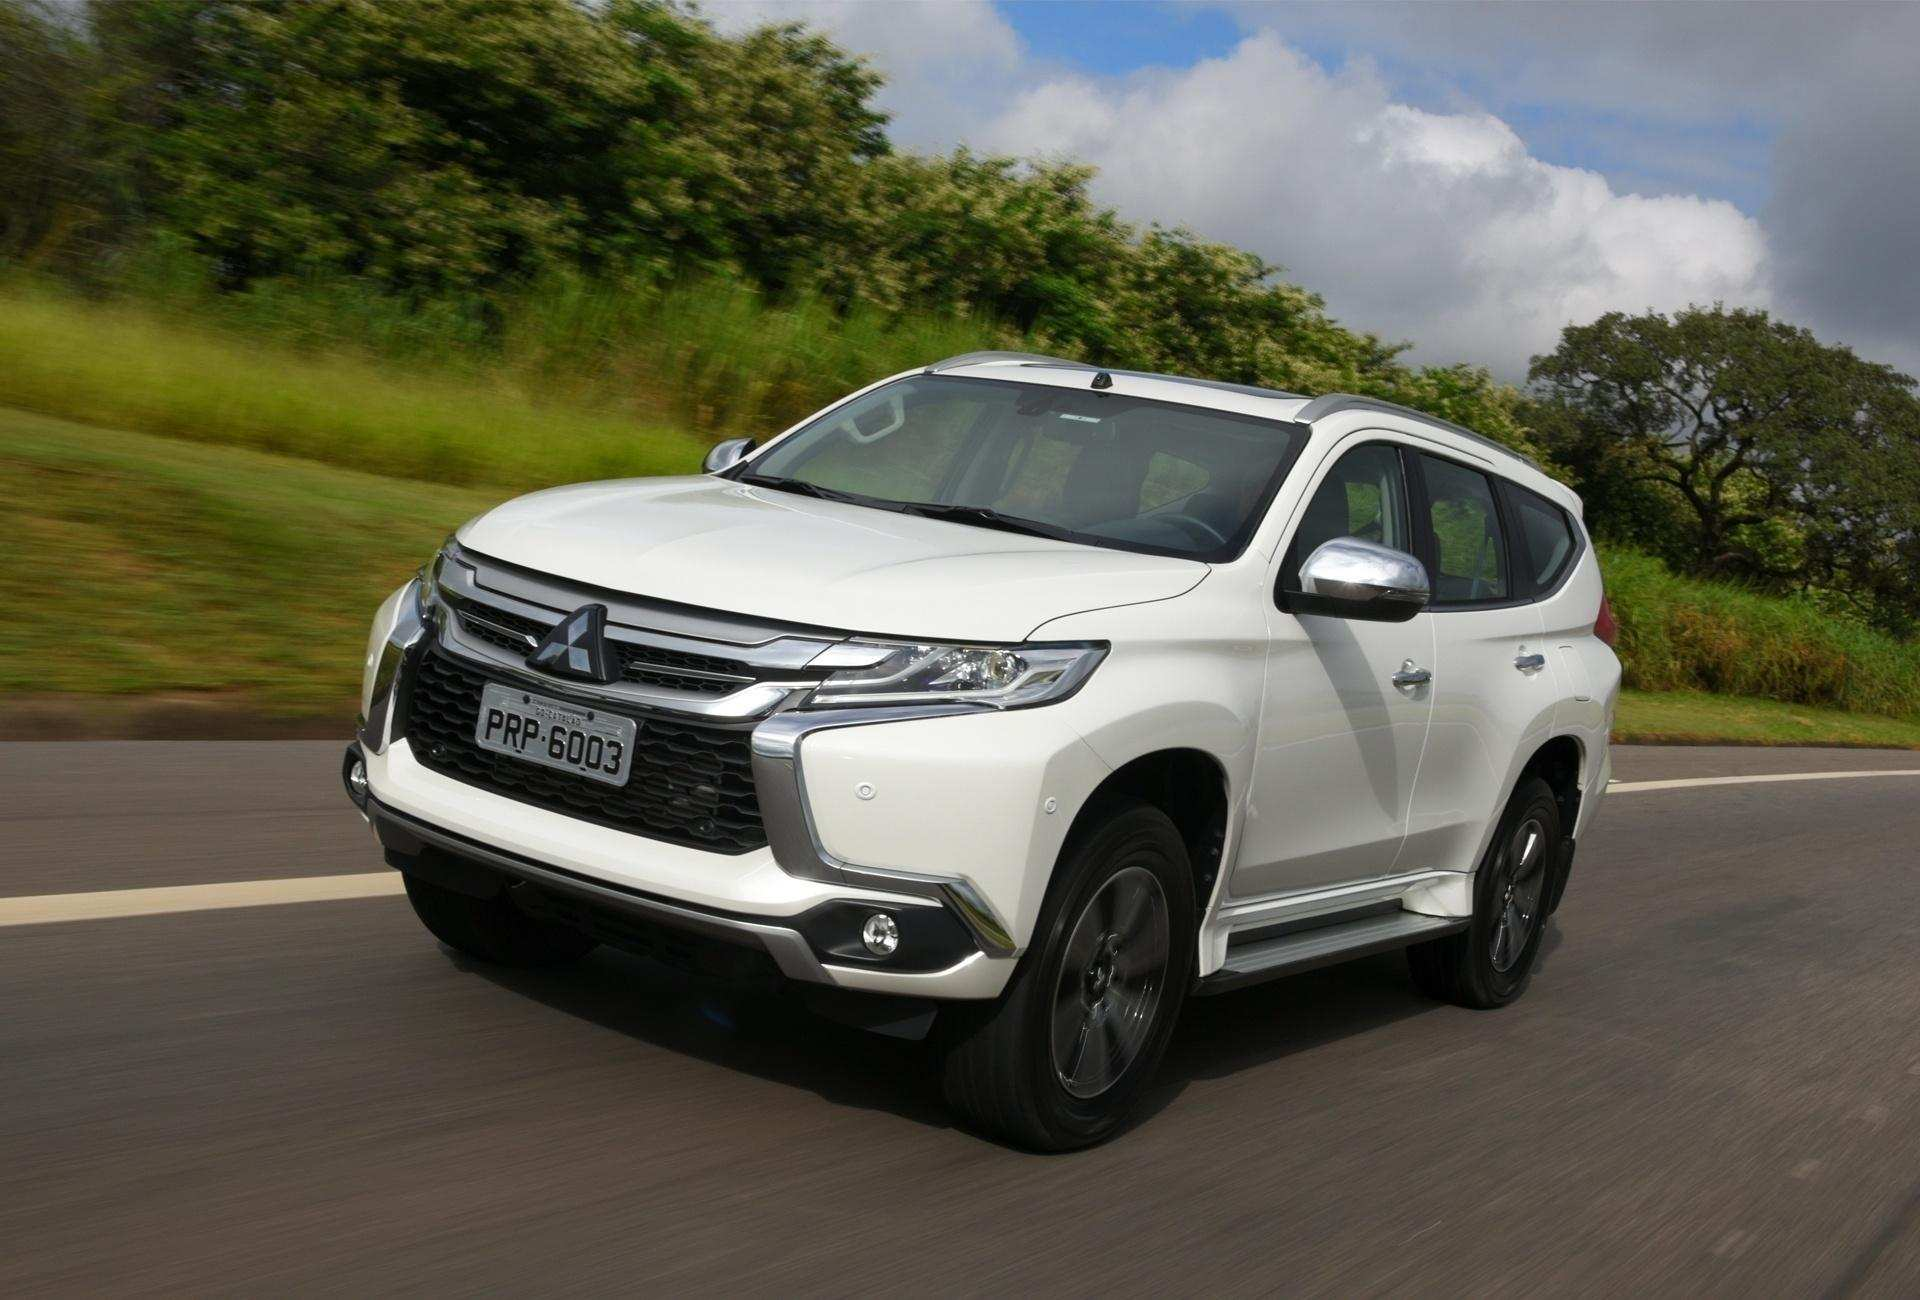 22 Best Review Mitsubishi Pajero Full 2020 Configurations by Mitsubishi Pajero Full 2020